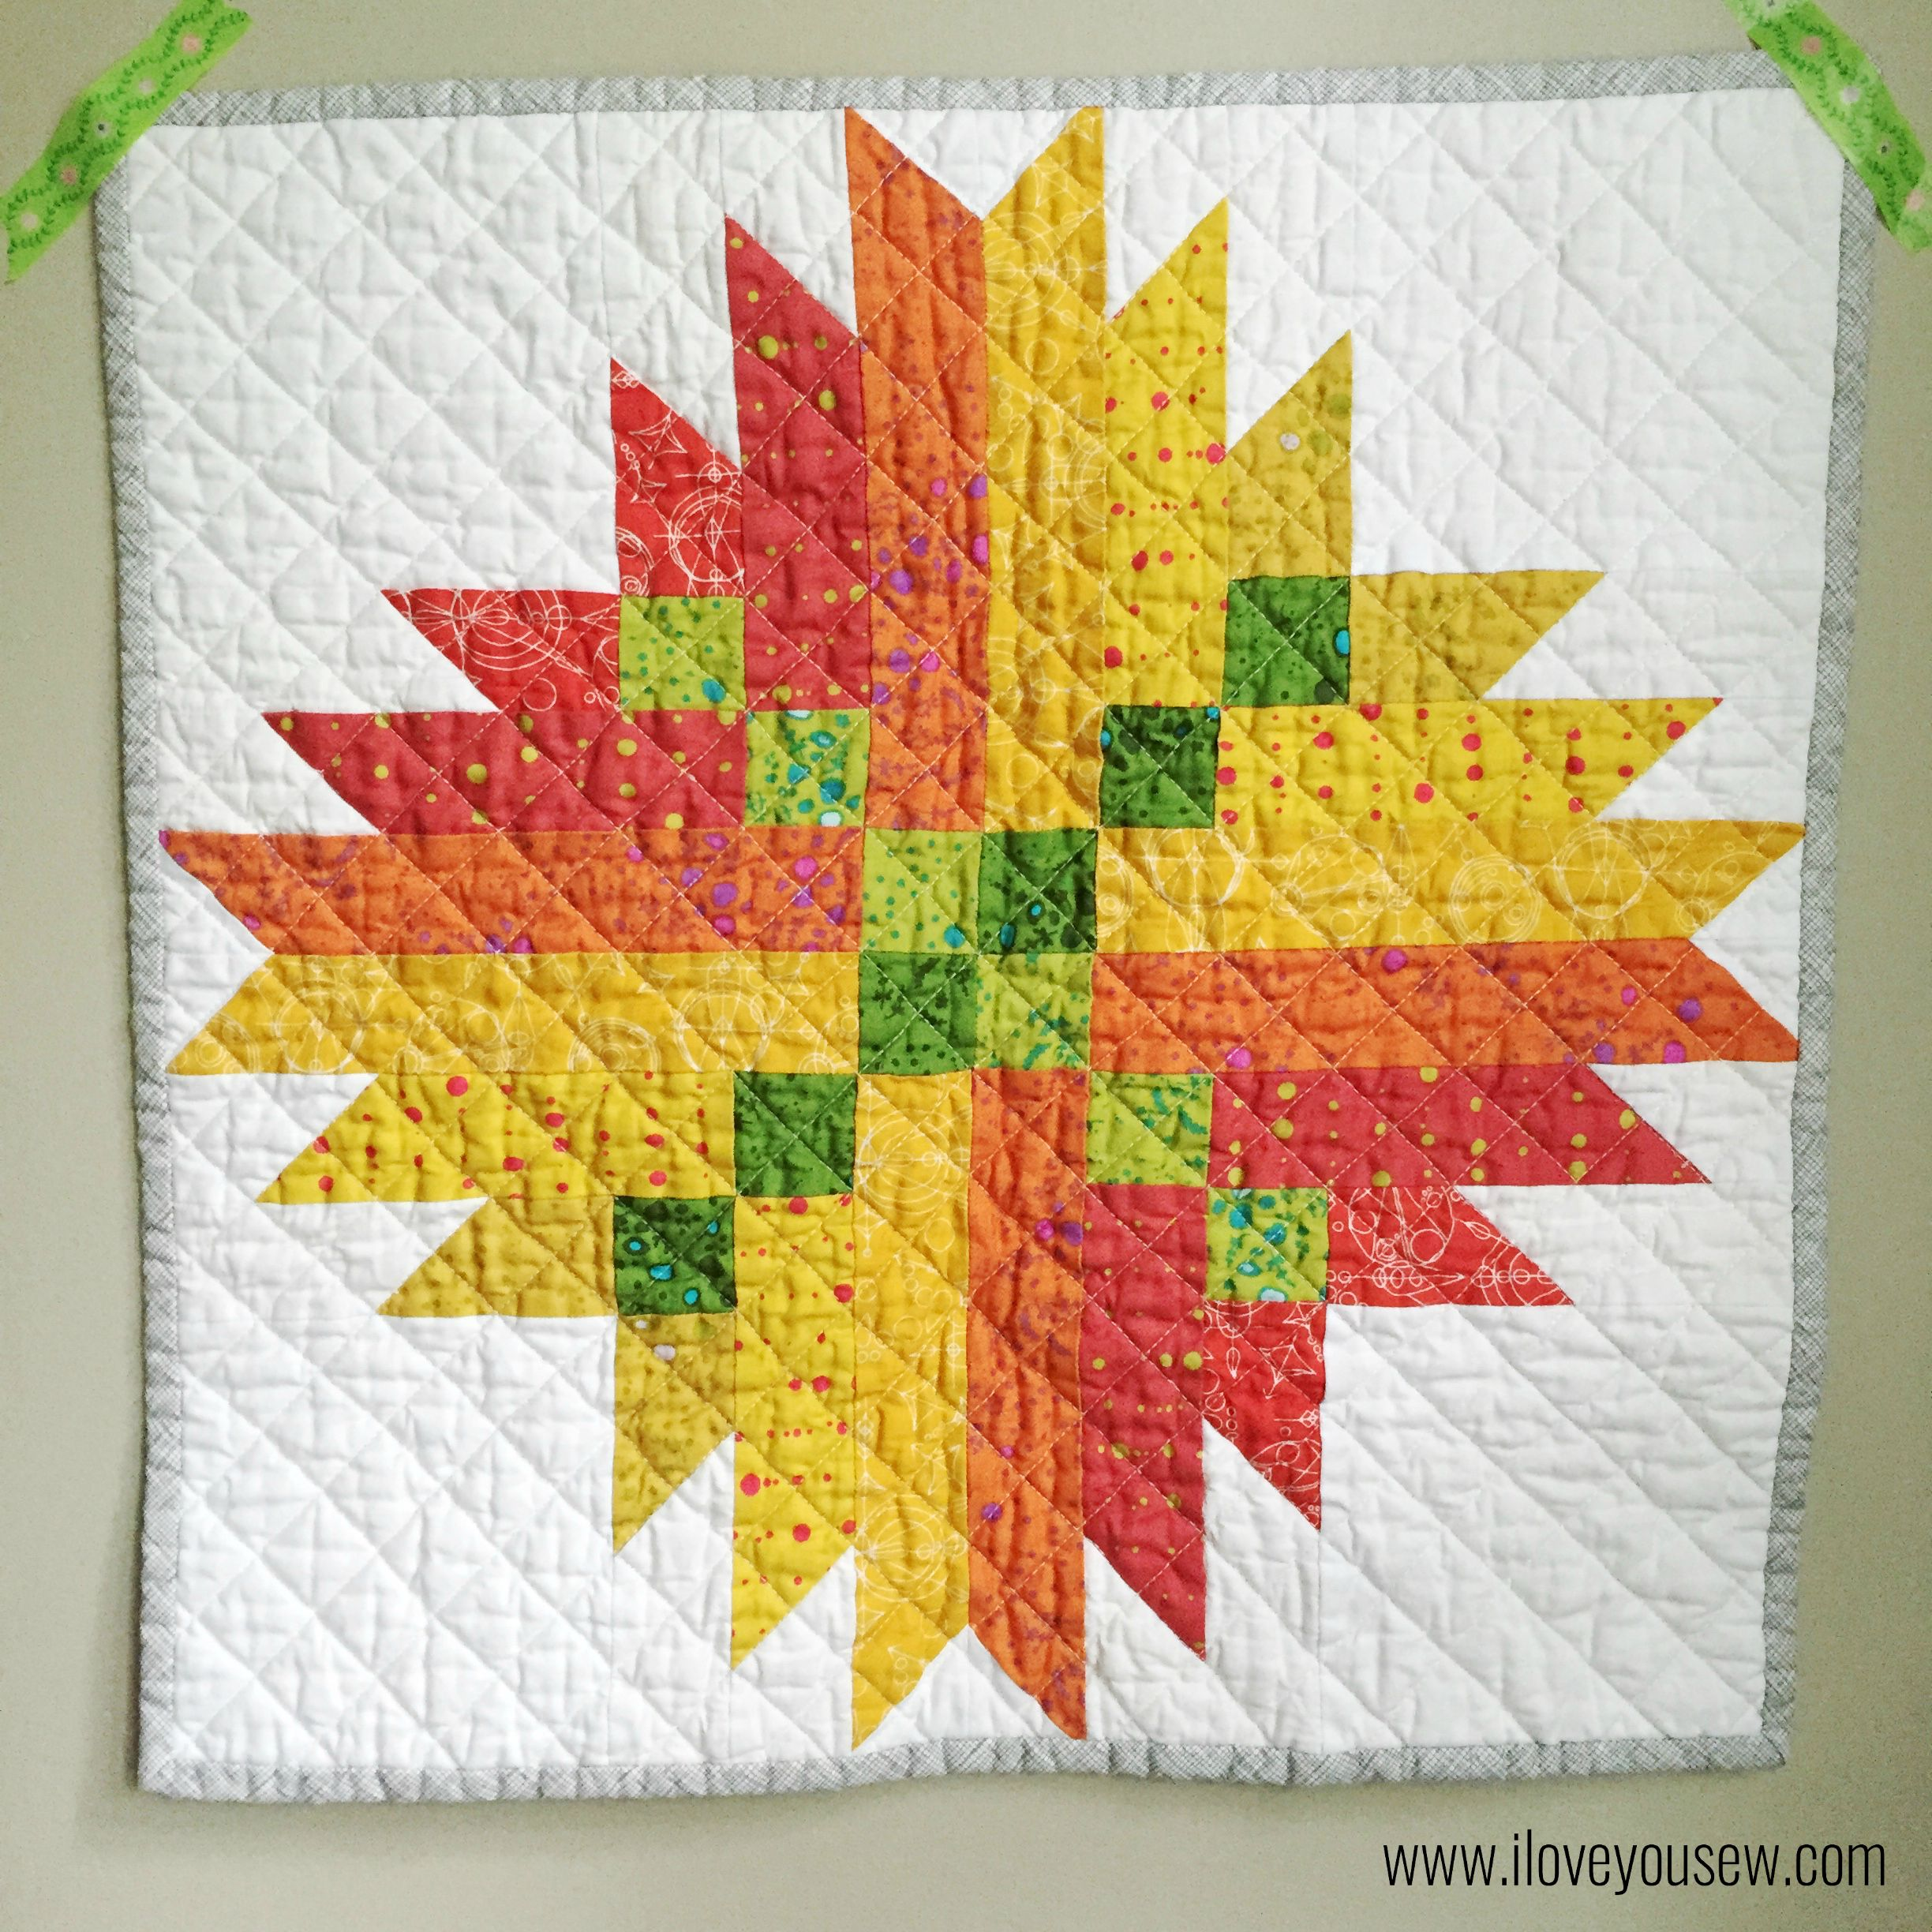 AG Mini Complete | Quilt blocks | Pinterest | Minis, Mini quilts and ...